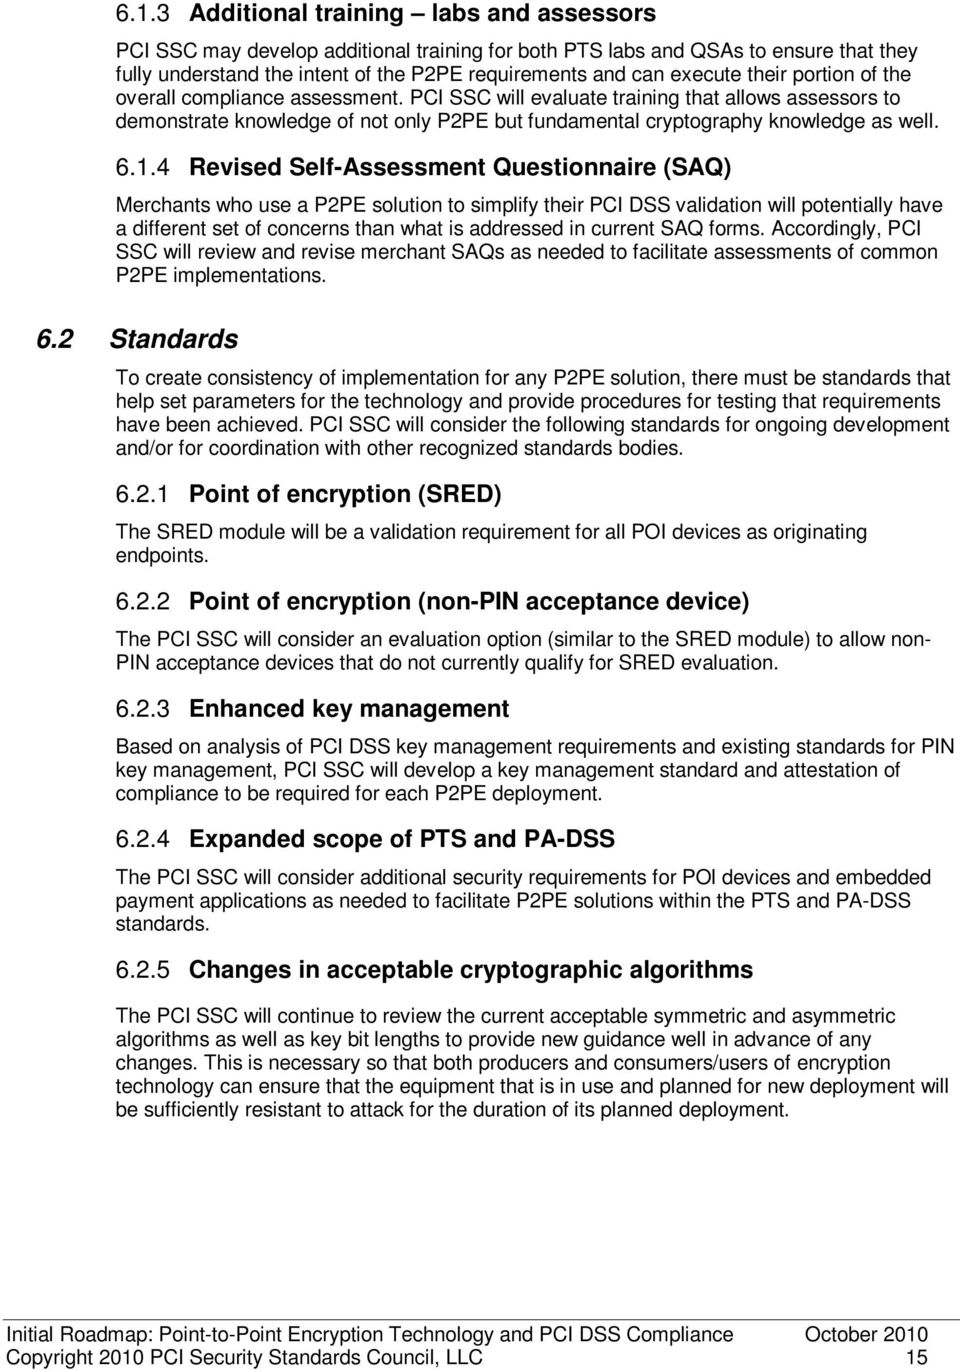 PCI SSC will evaluate training that allows assessors to demonstrate knowledge of not only P2PE but fundamental cryptography knowledge as well. 6.1.